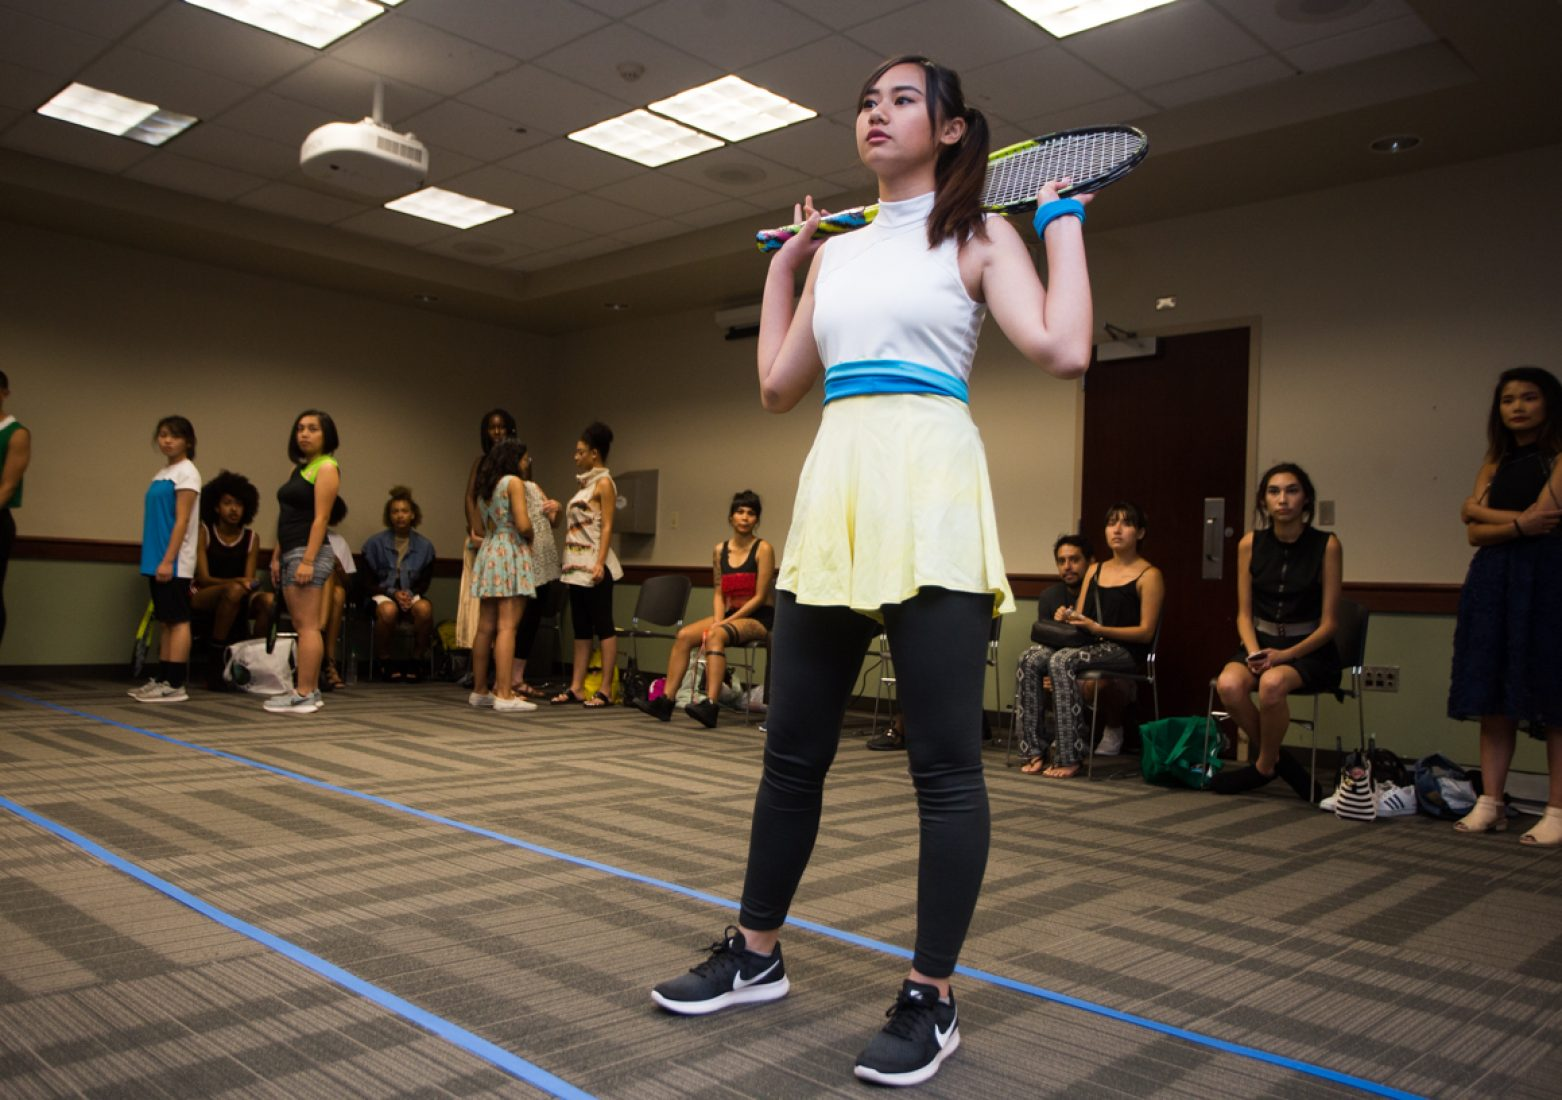 A model practices her runway walk in a Phua Lee design during rehearsal in the University Union Foothill Suite on Wednesday. Many of Lee's models in her 'Take the Hint' collection carry tennis racquets on the catwalk. (Photo by Nicole Fowler)